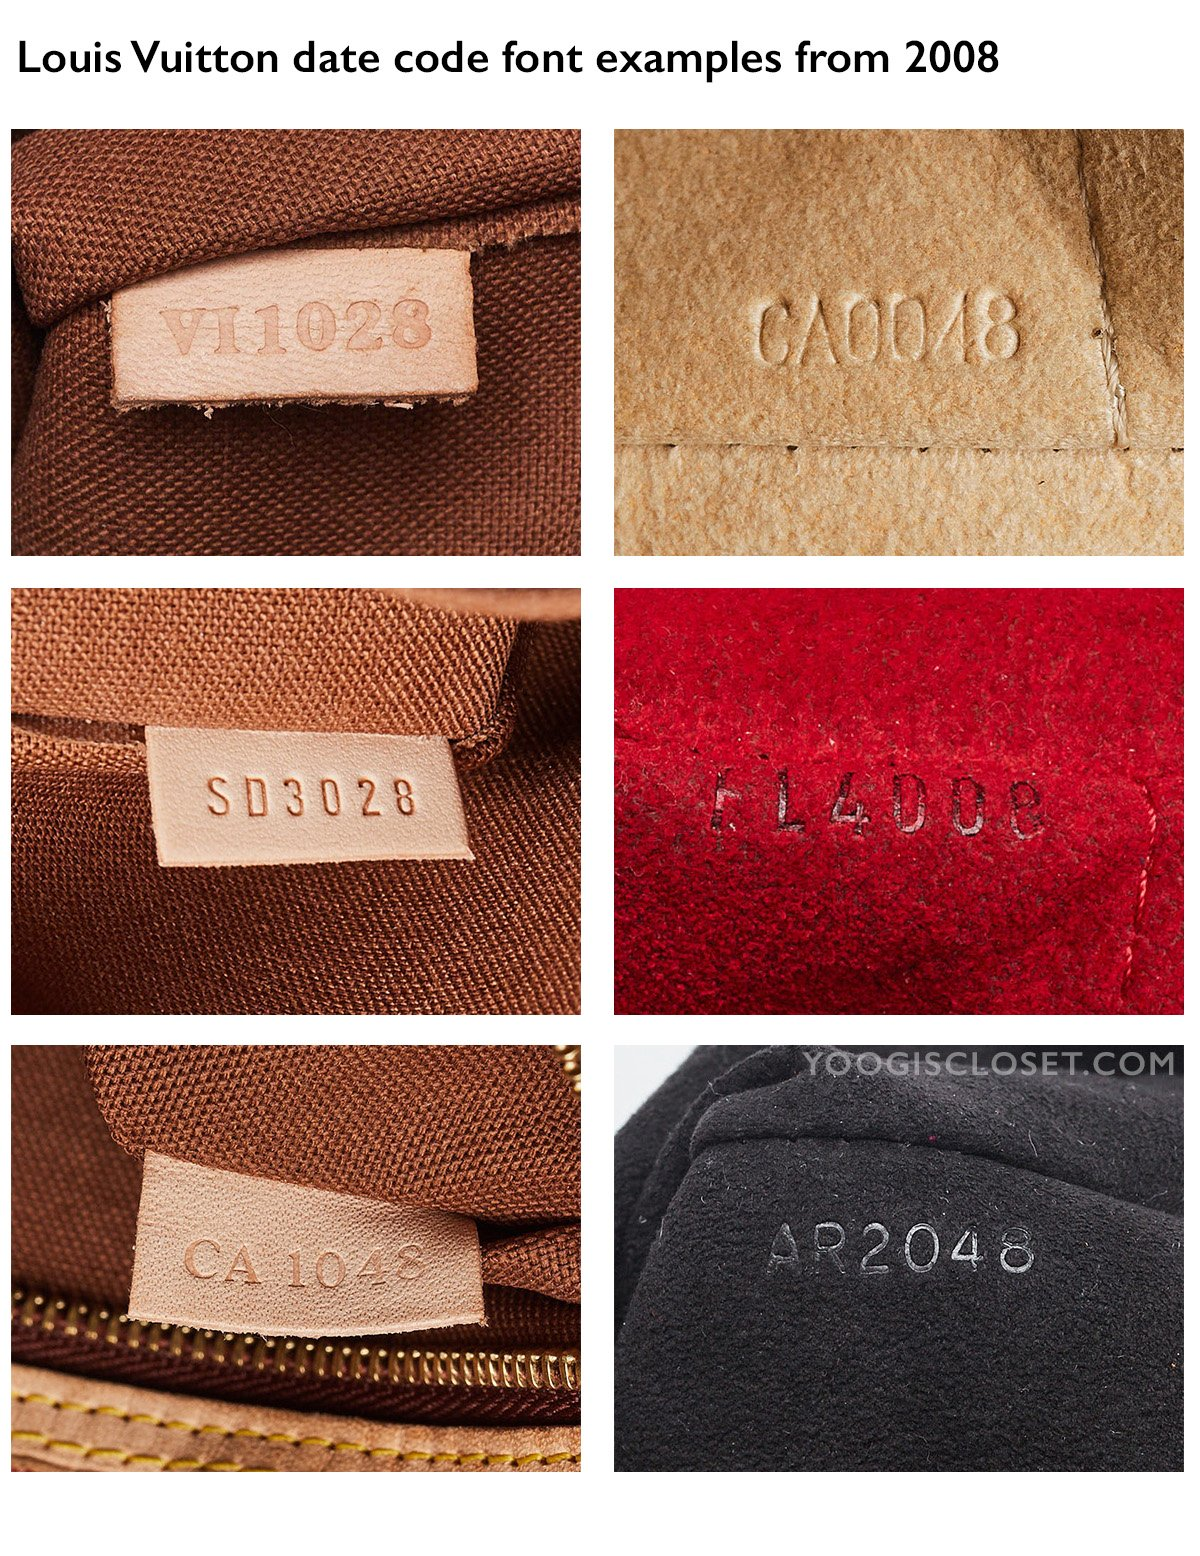 Louis Vuitton Date Code Examples from 2008   Yoogi's Closet Authenticated Pre-Owned Luxury yoogiscloset.com